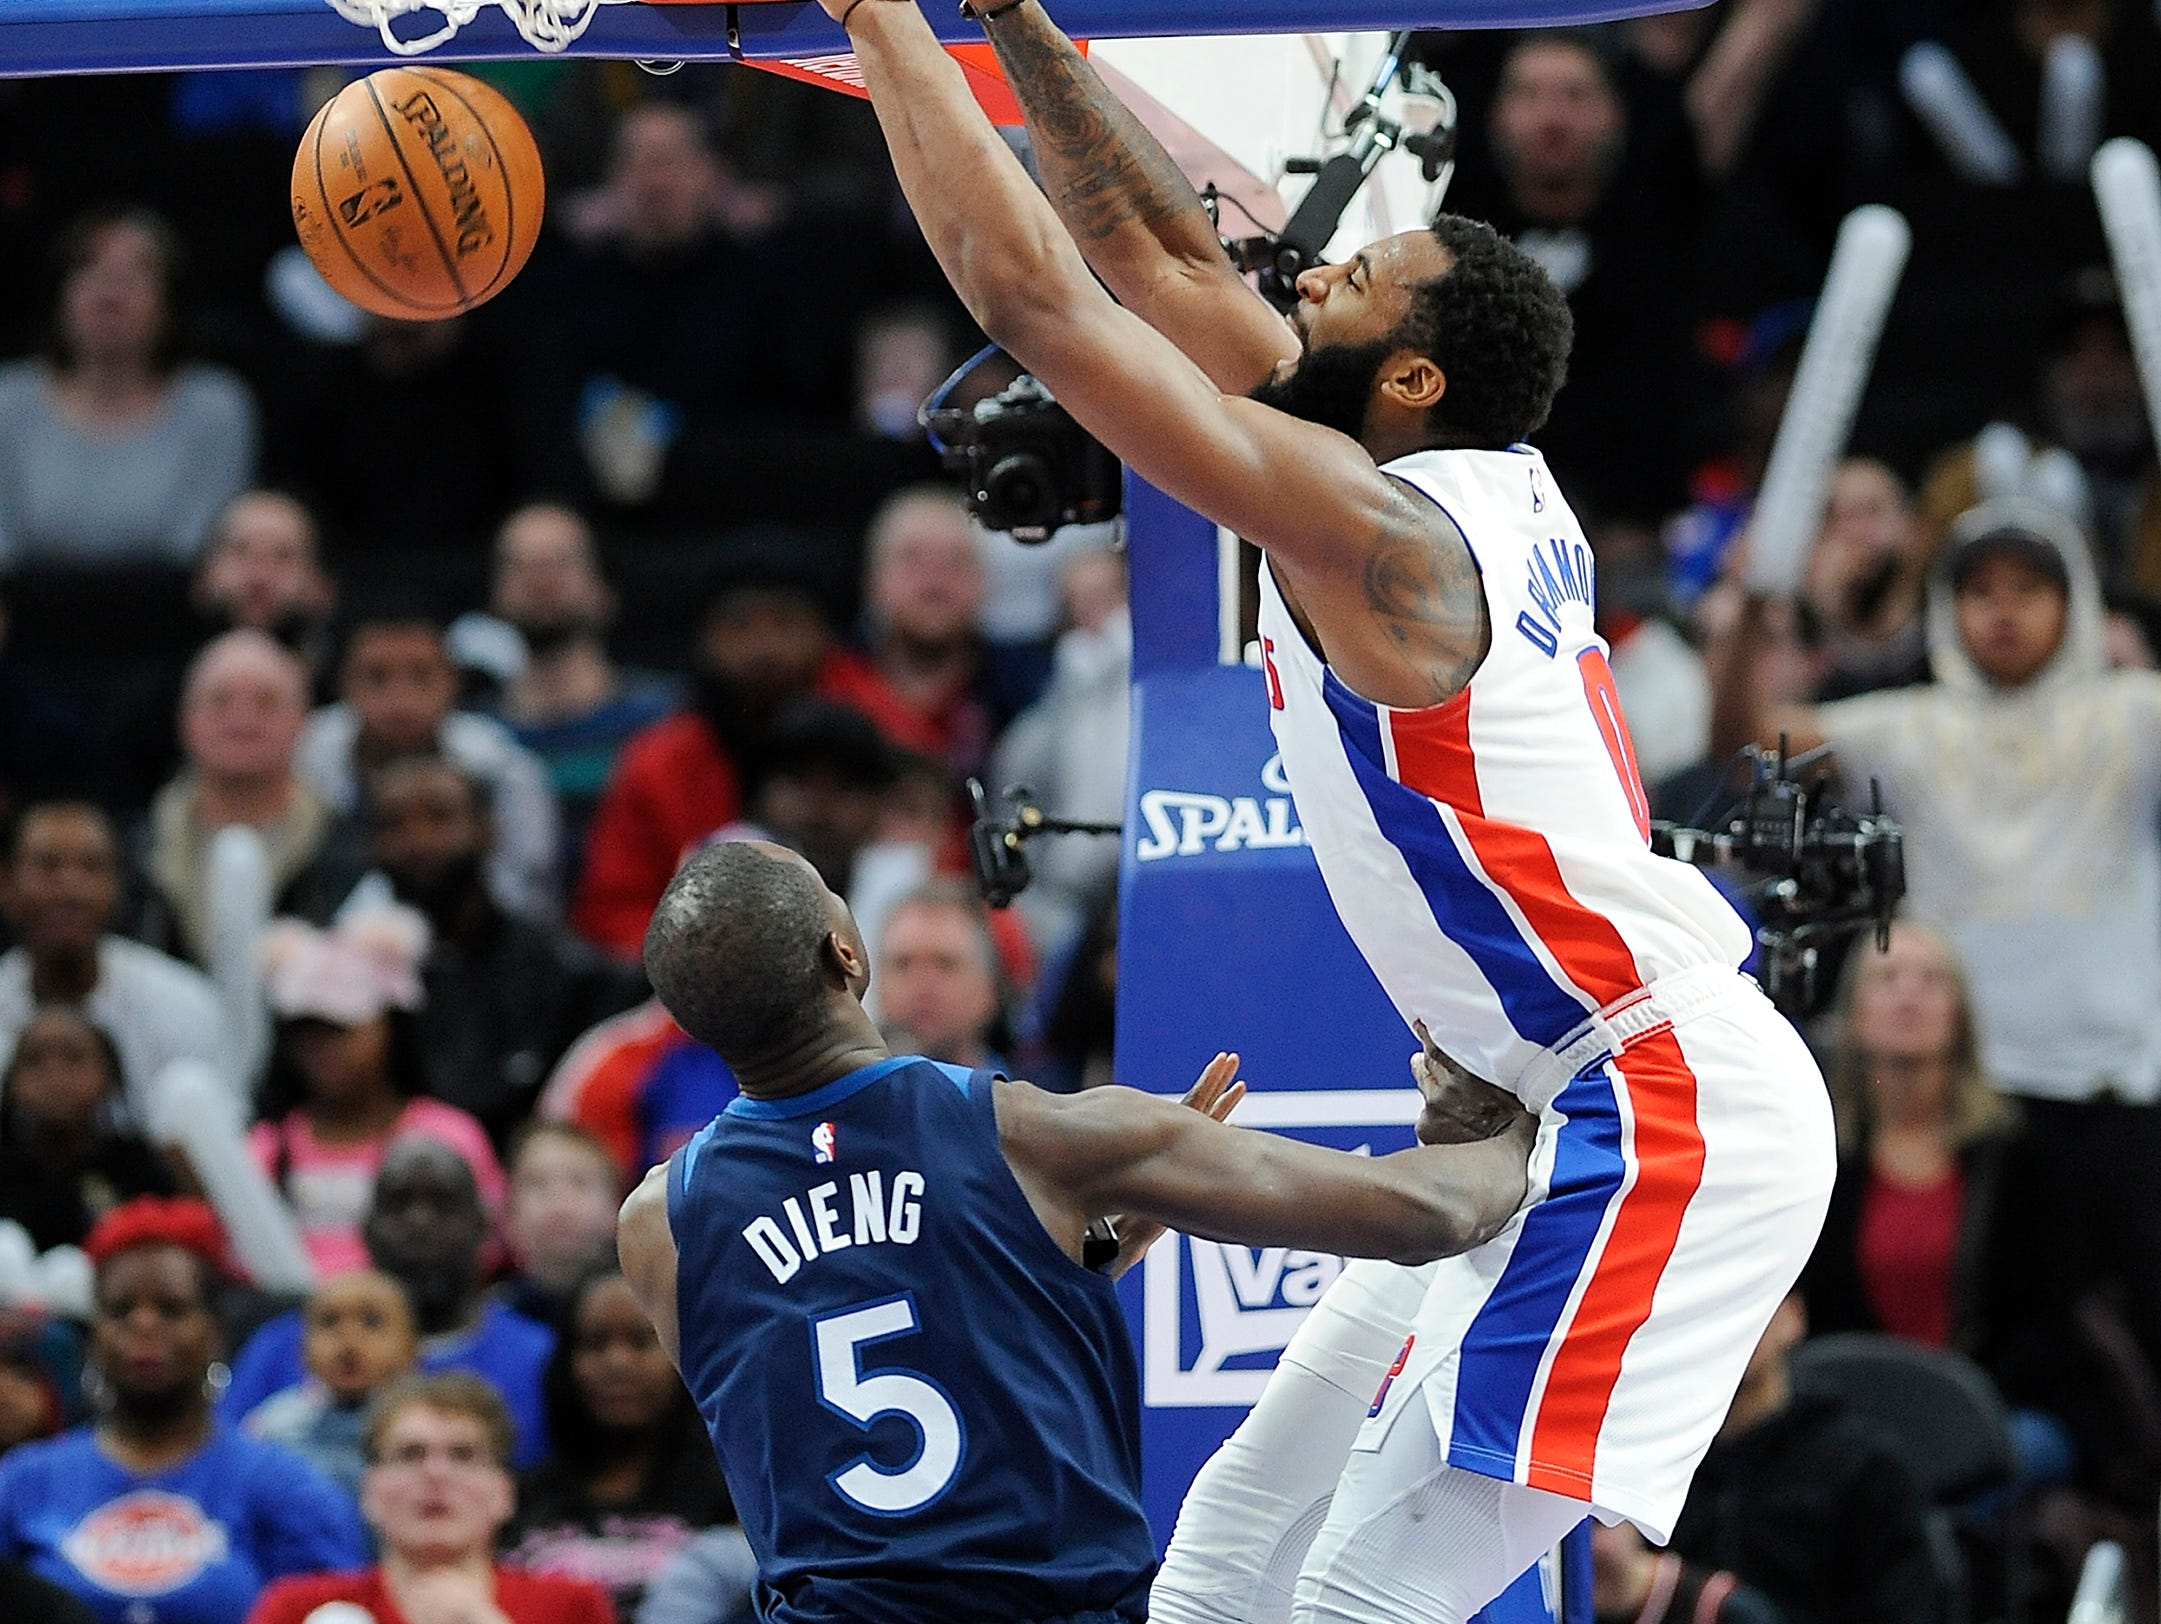 Pistons' Andre Drummond dunks over Timberwolves' Gorgui Dieng in the fourth quarter.